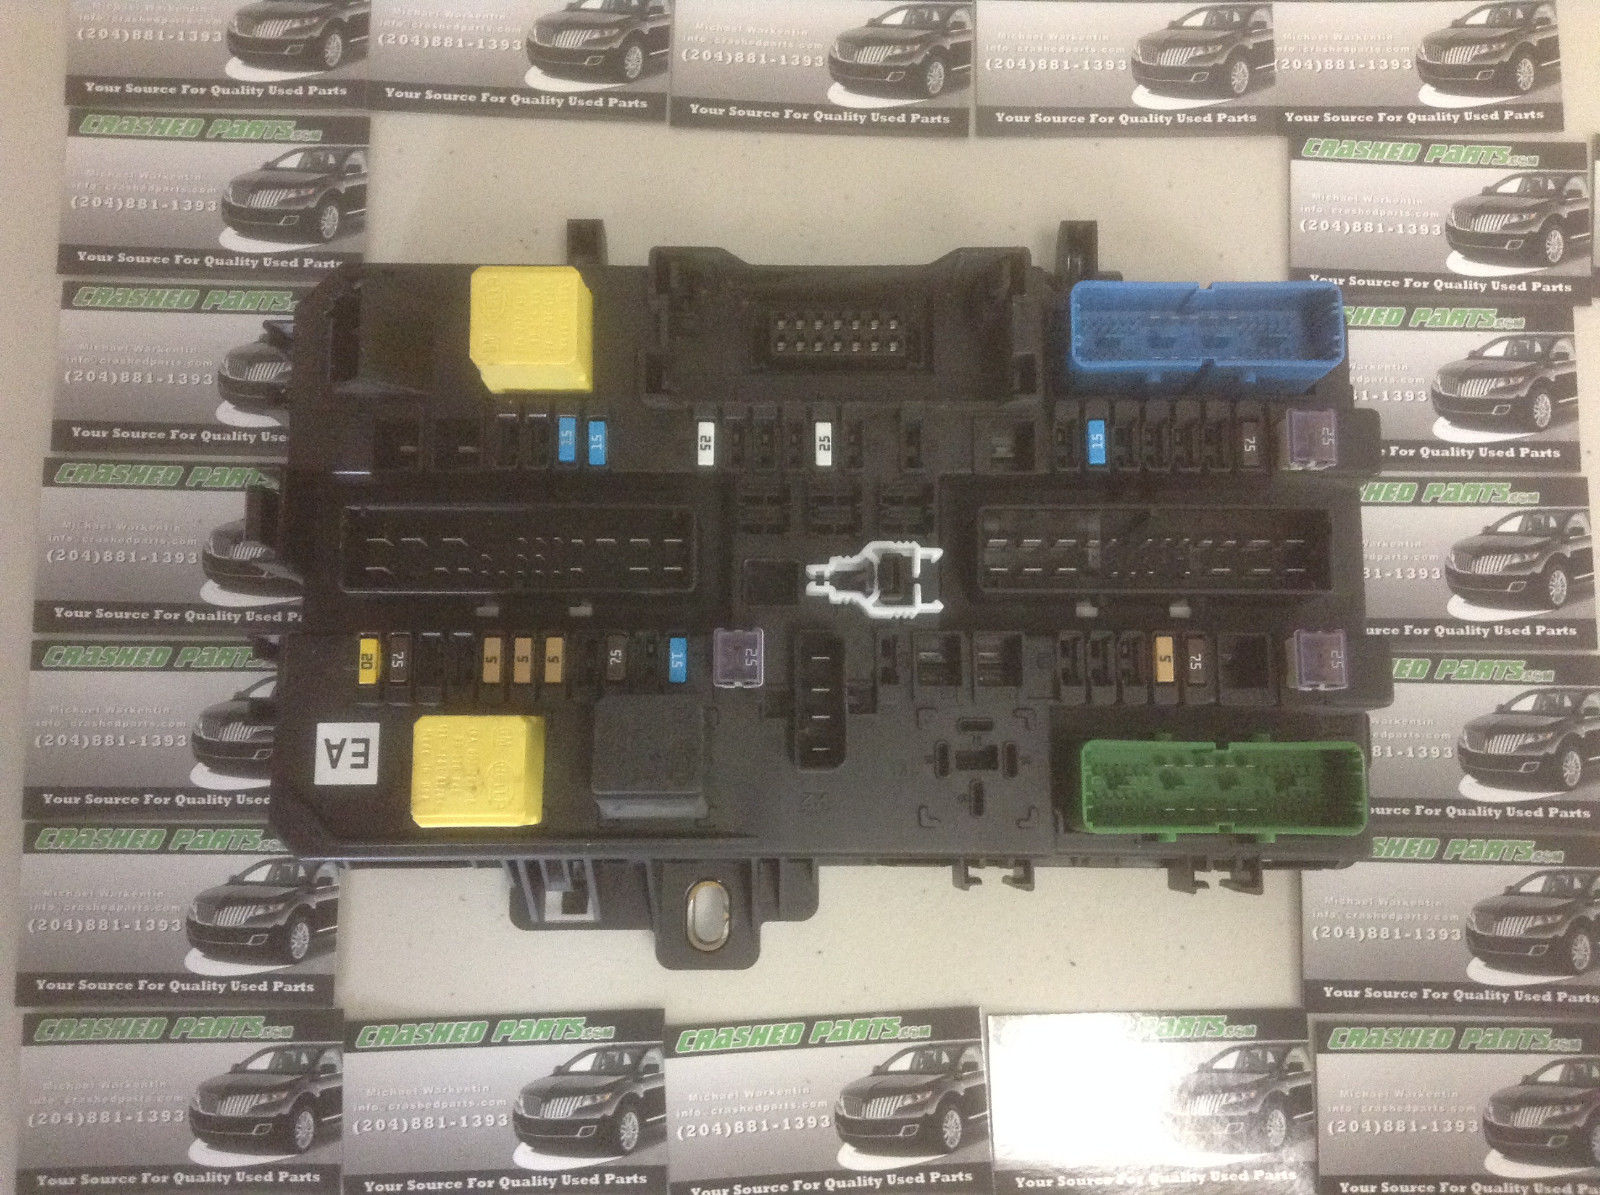 Saturn Astra Left Rear Fuse Box